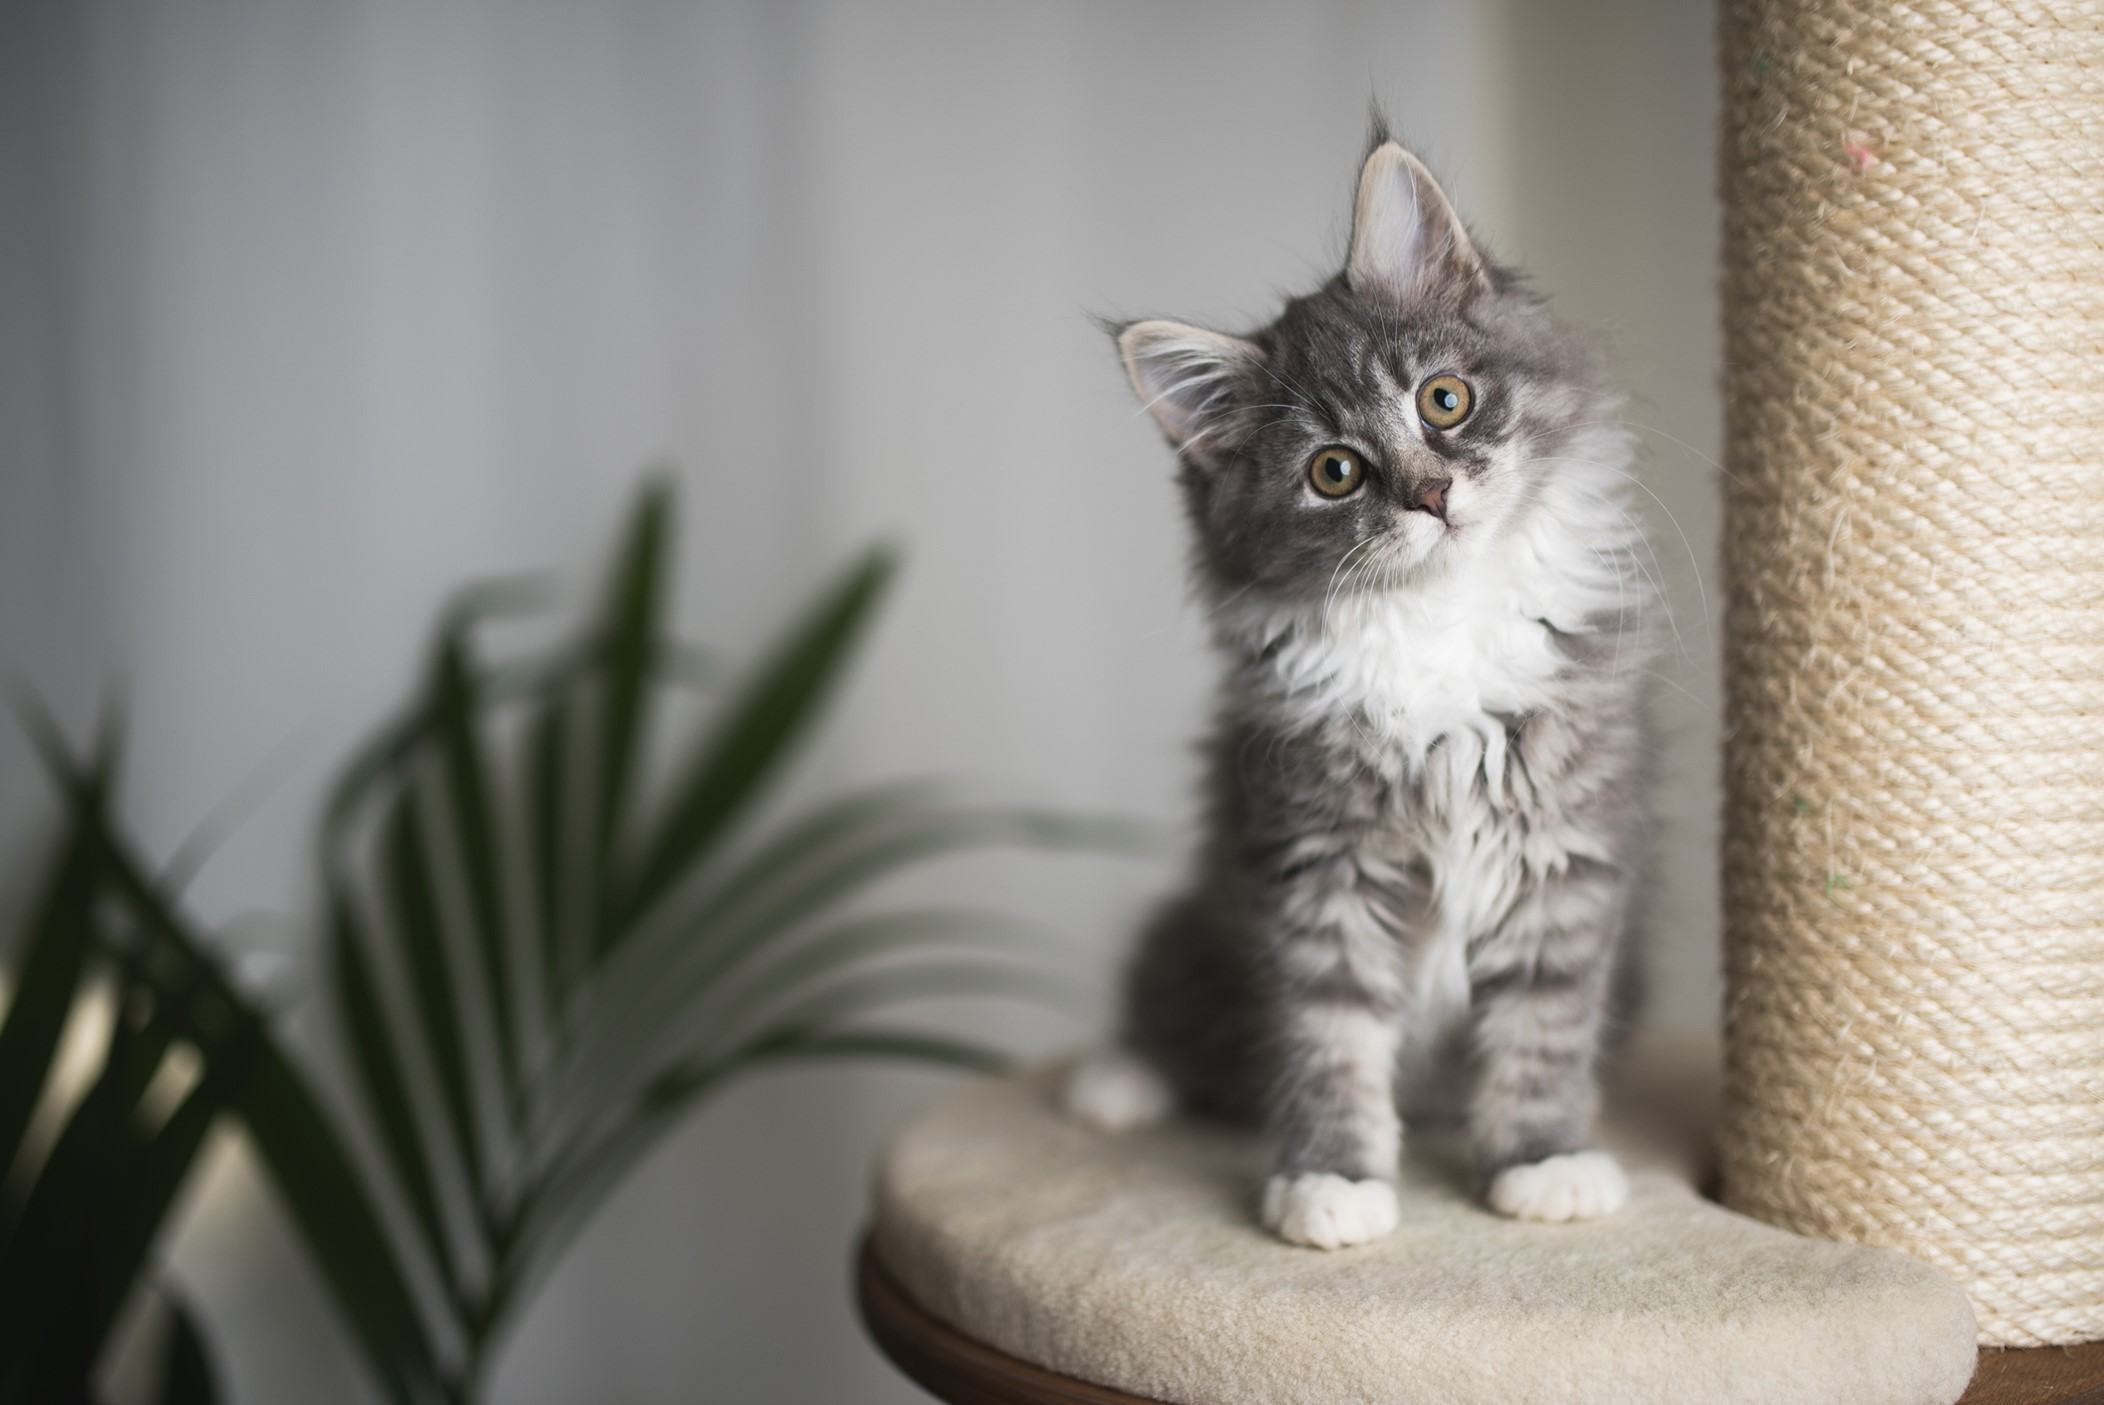 A kitten sitting on a ledge of a scratching post